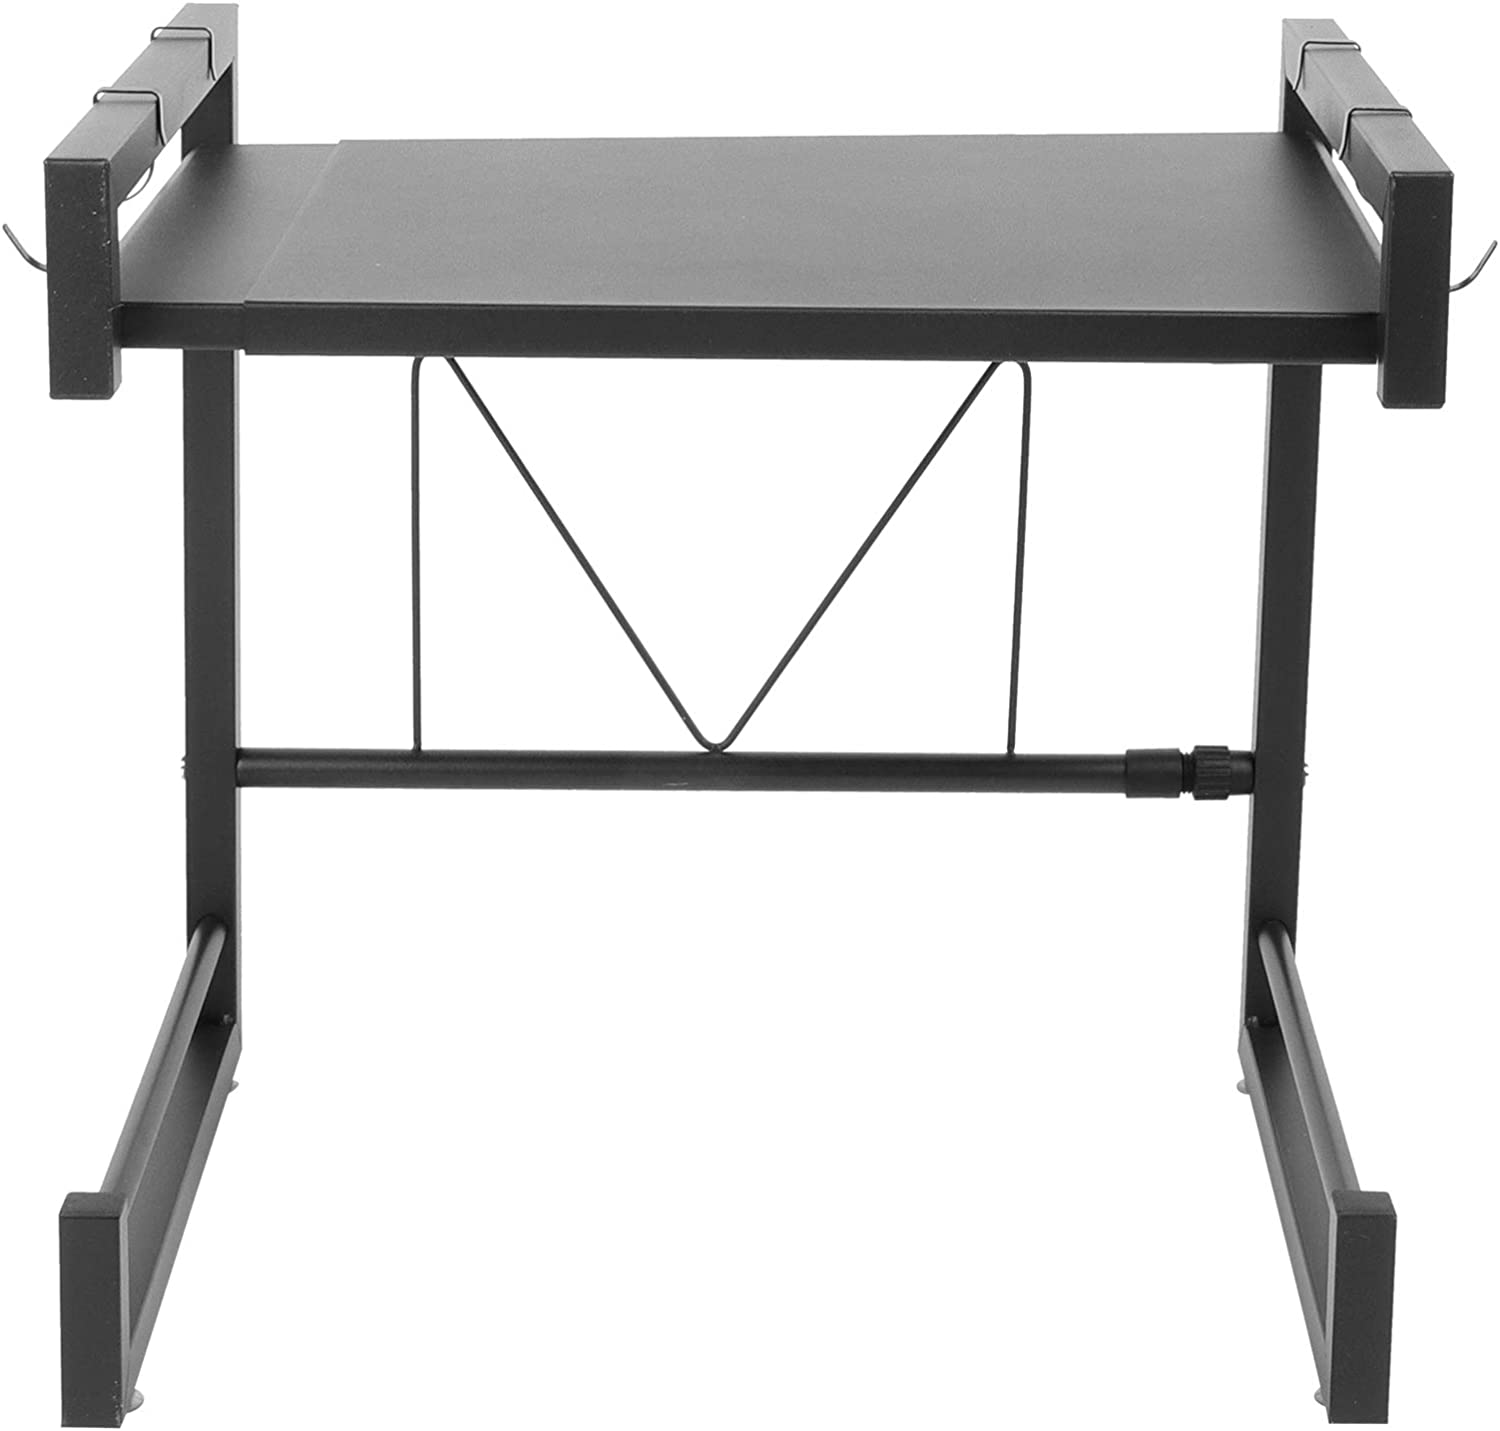 YIUS Kansas City Mall Retractable Microwave Store Rack Stand Oven Kitchen Baker's